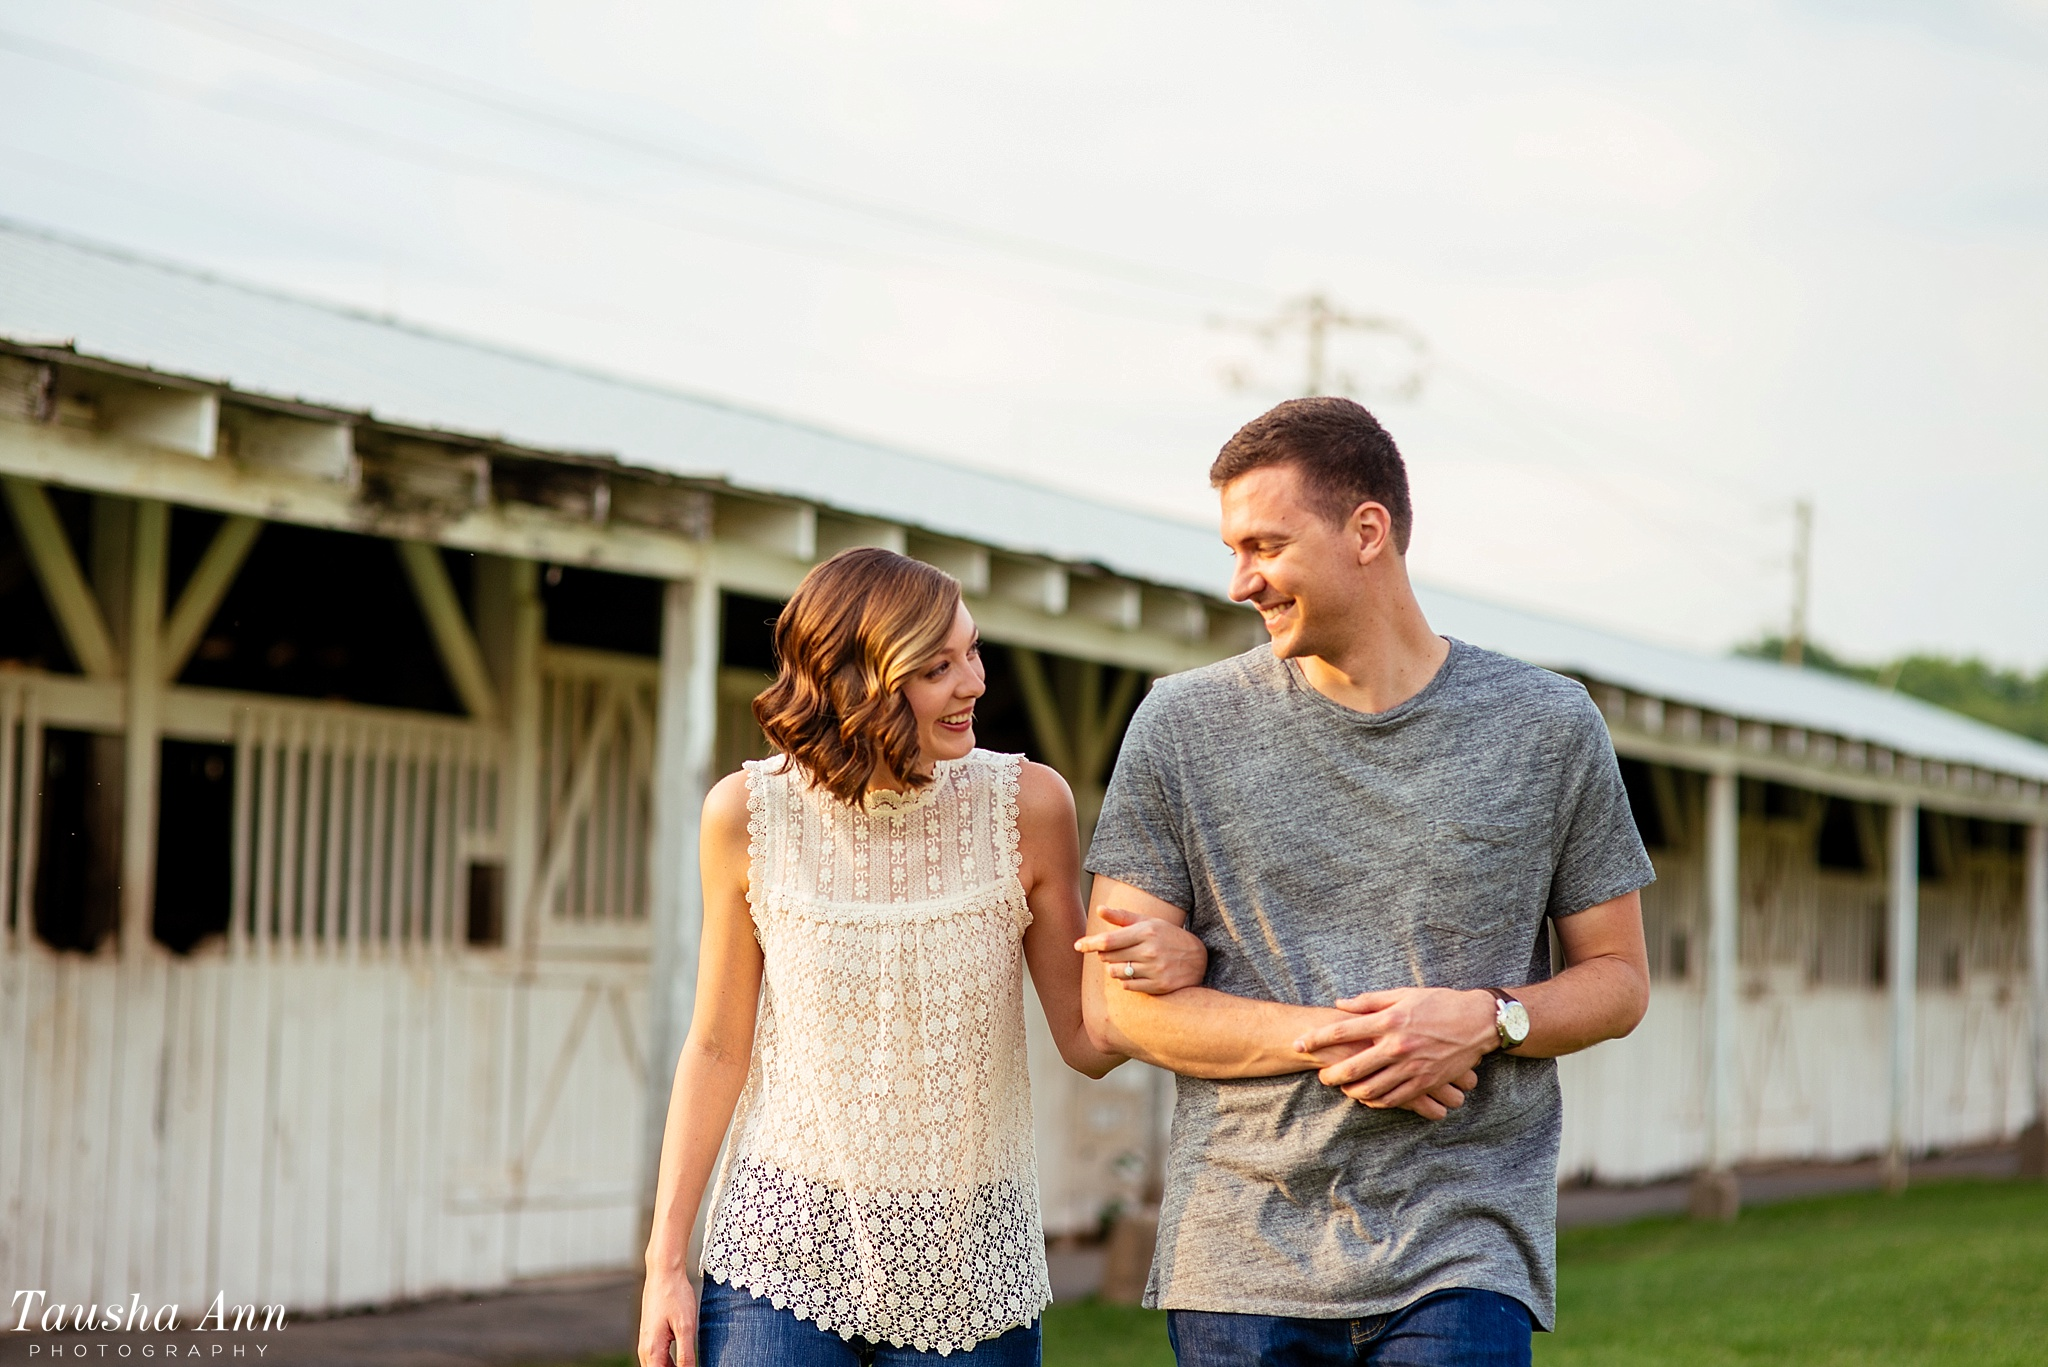 Nashville_engagement_Wedding_Tausha_Ann_Photography_Franklin_TN_Harlinsdale_Farm_Agricultural_Center_Nashville_0108